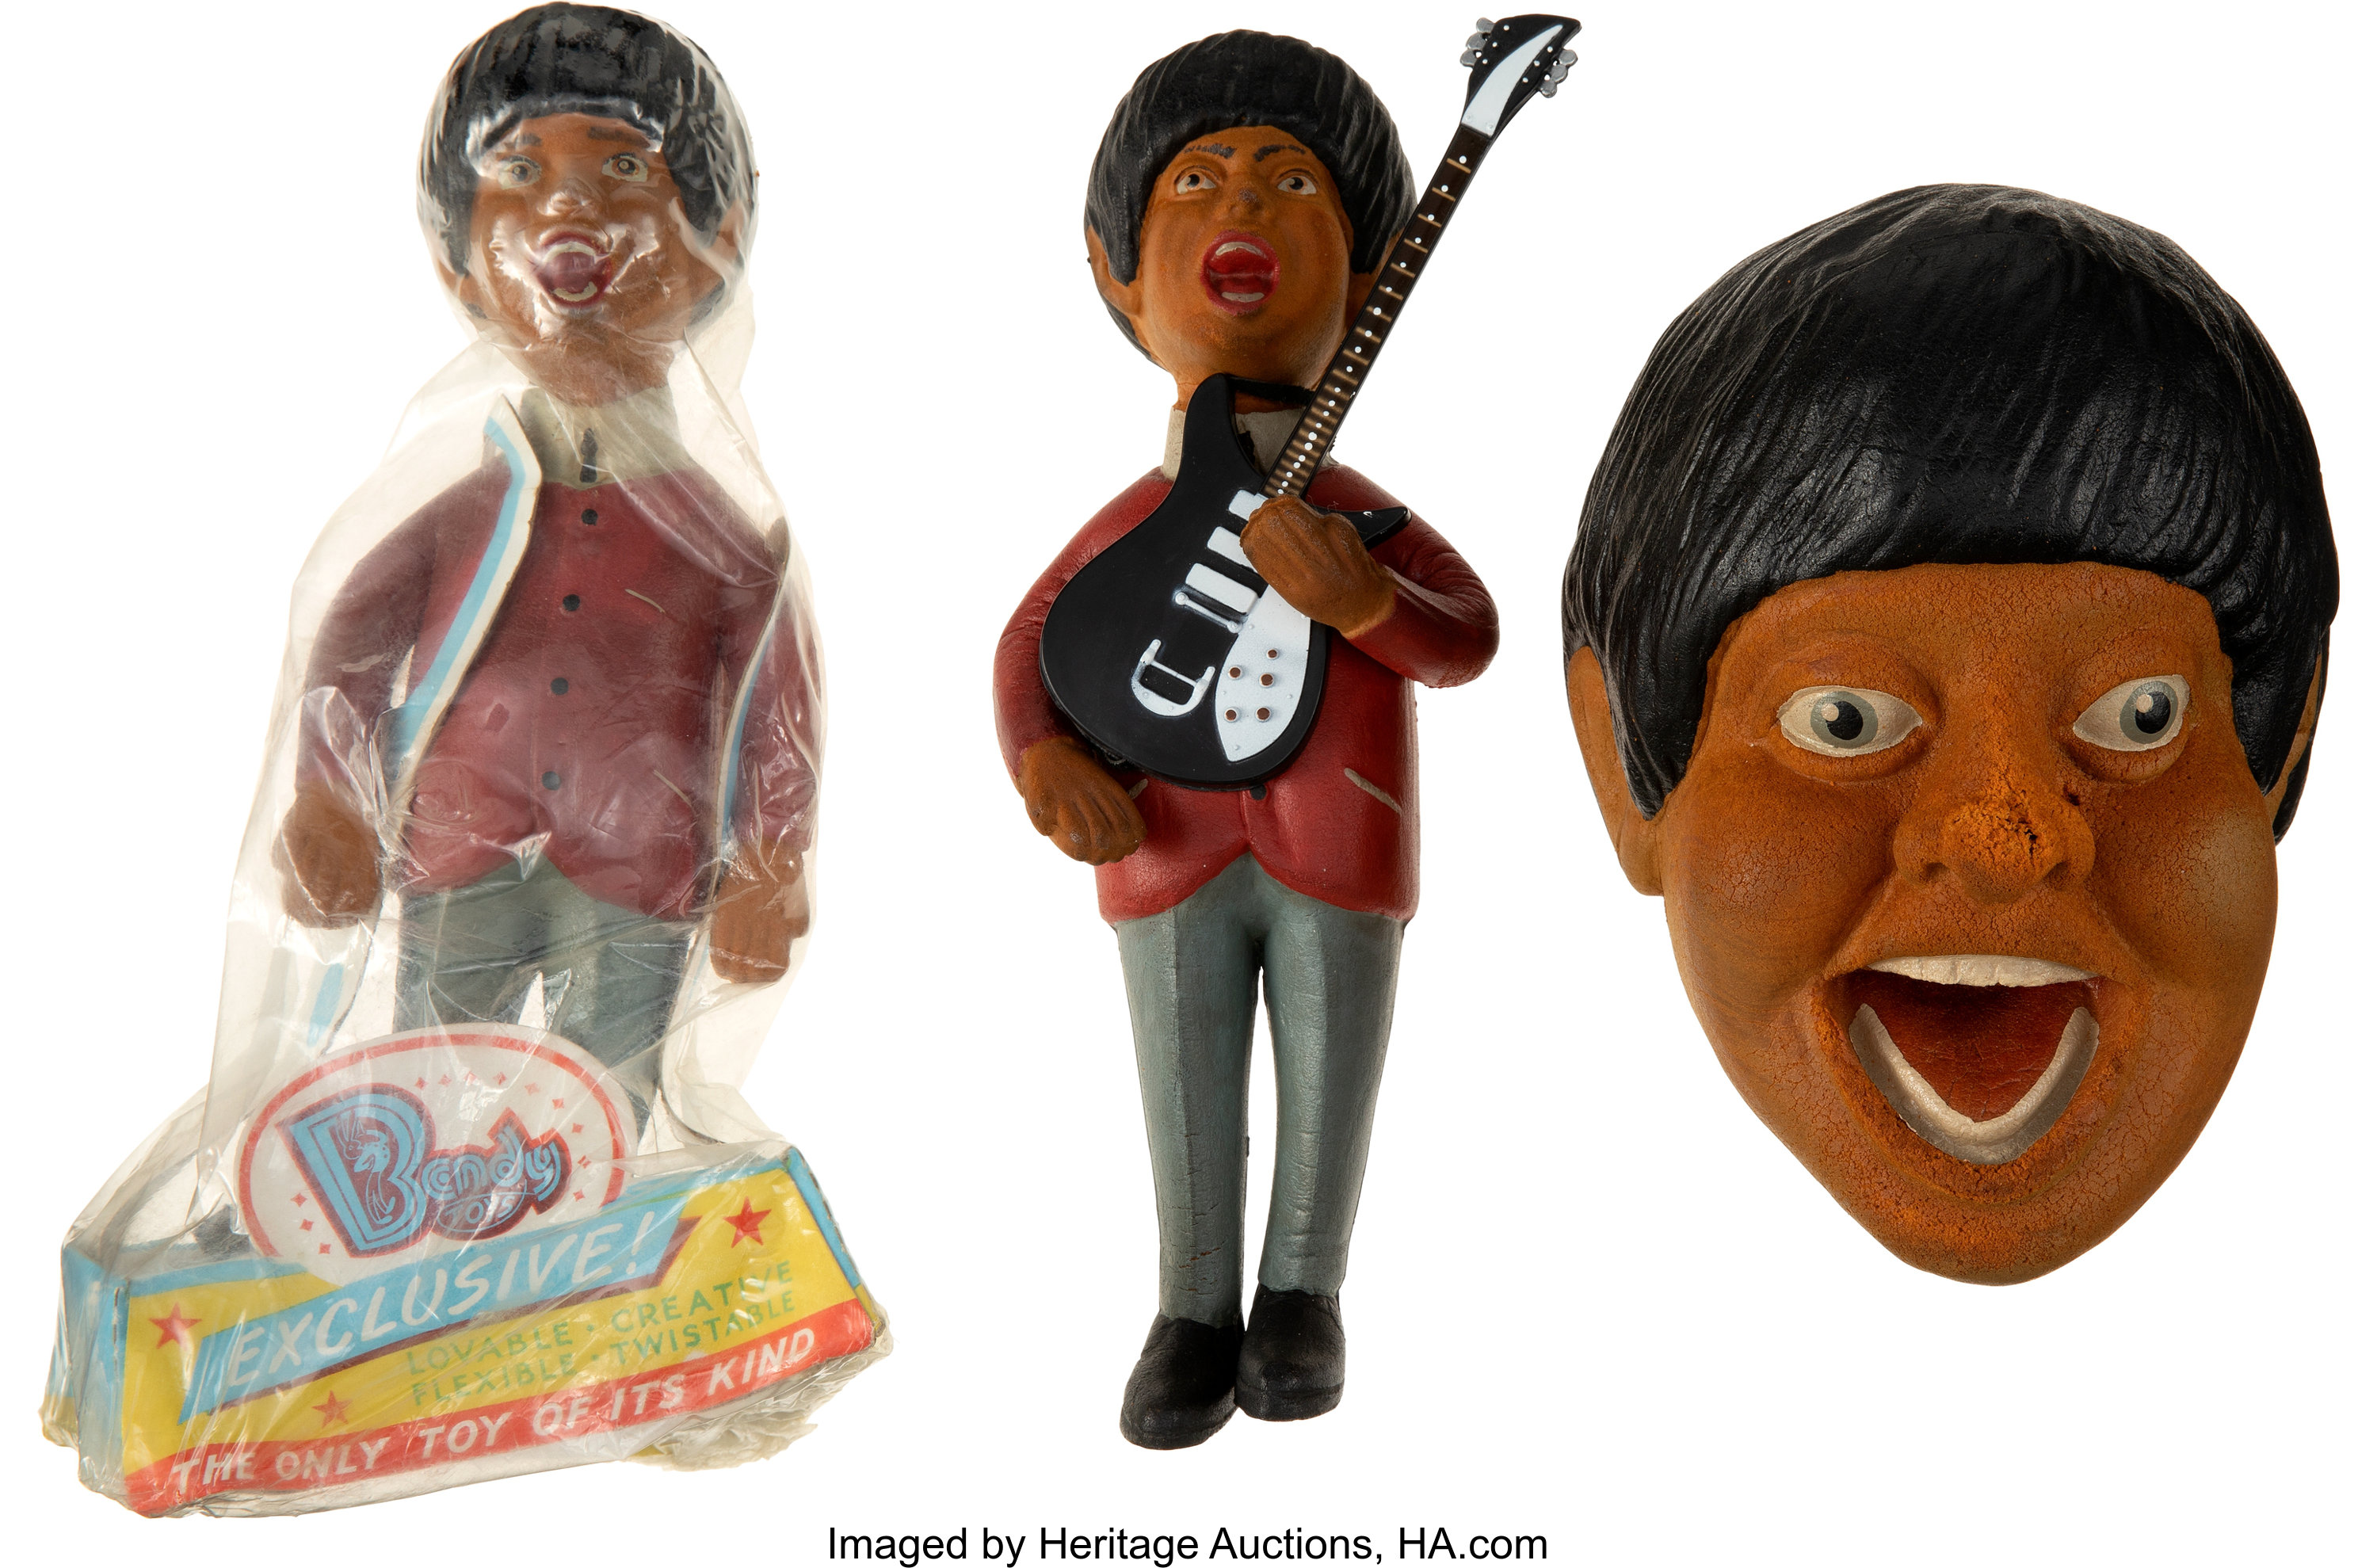 The Beatles Paul Mccartney Bendy Toy In Pkg Paul Out Of Pkg Lot 89779 Heritage Auctions